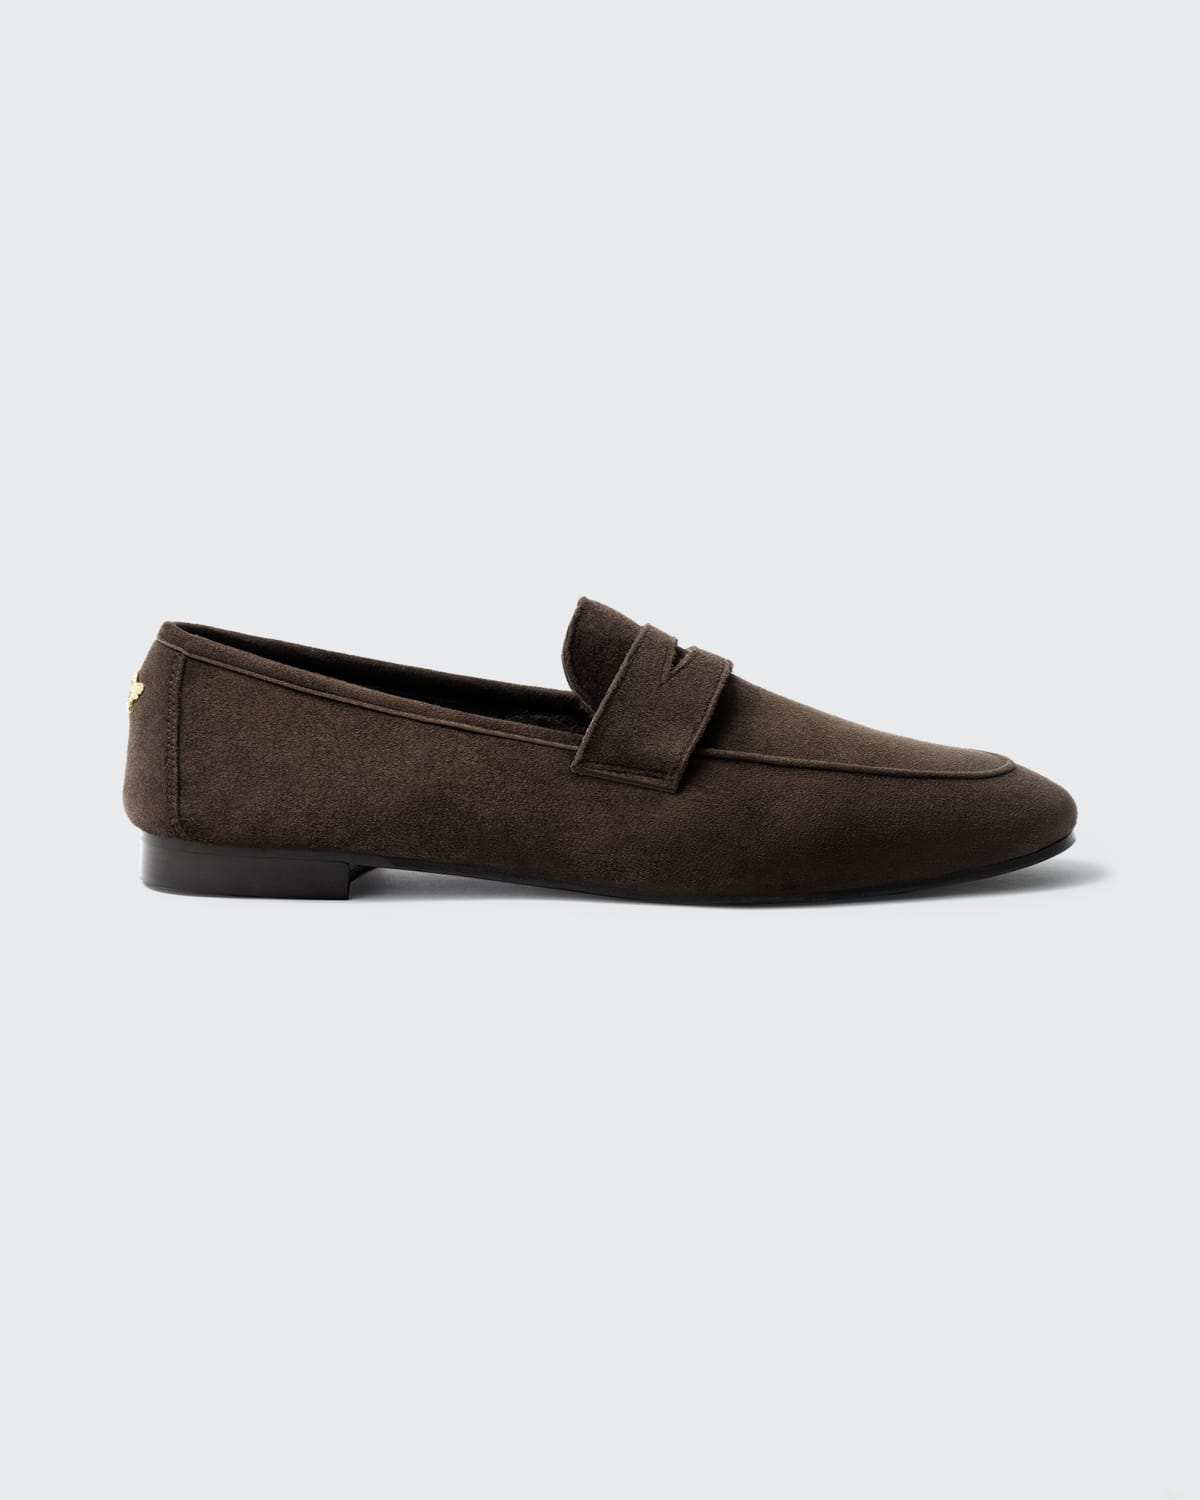 Suede Shearling Slip-On Penny Loafers